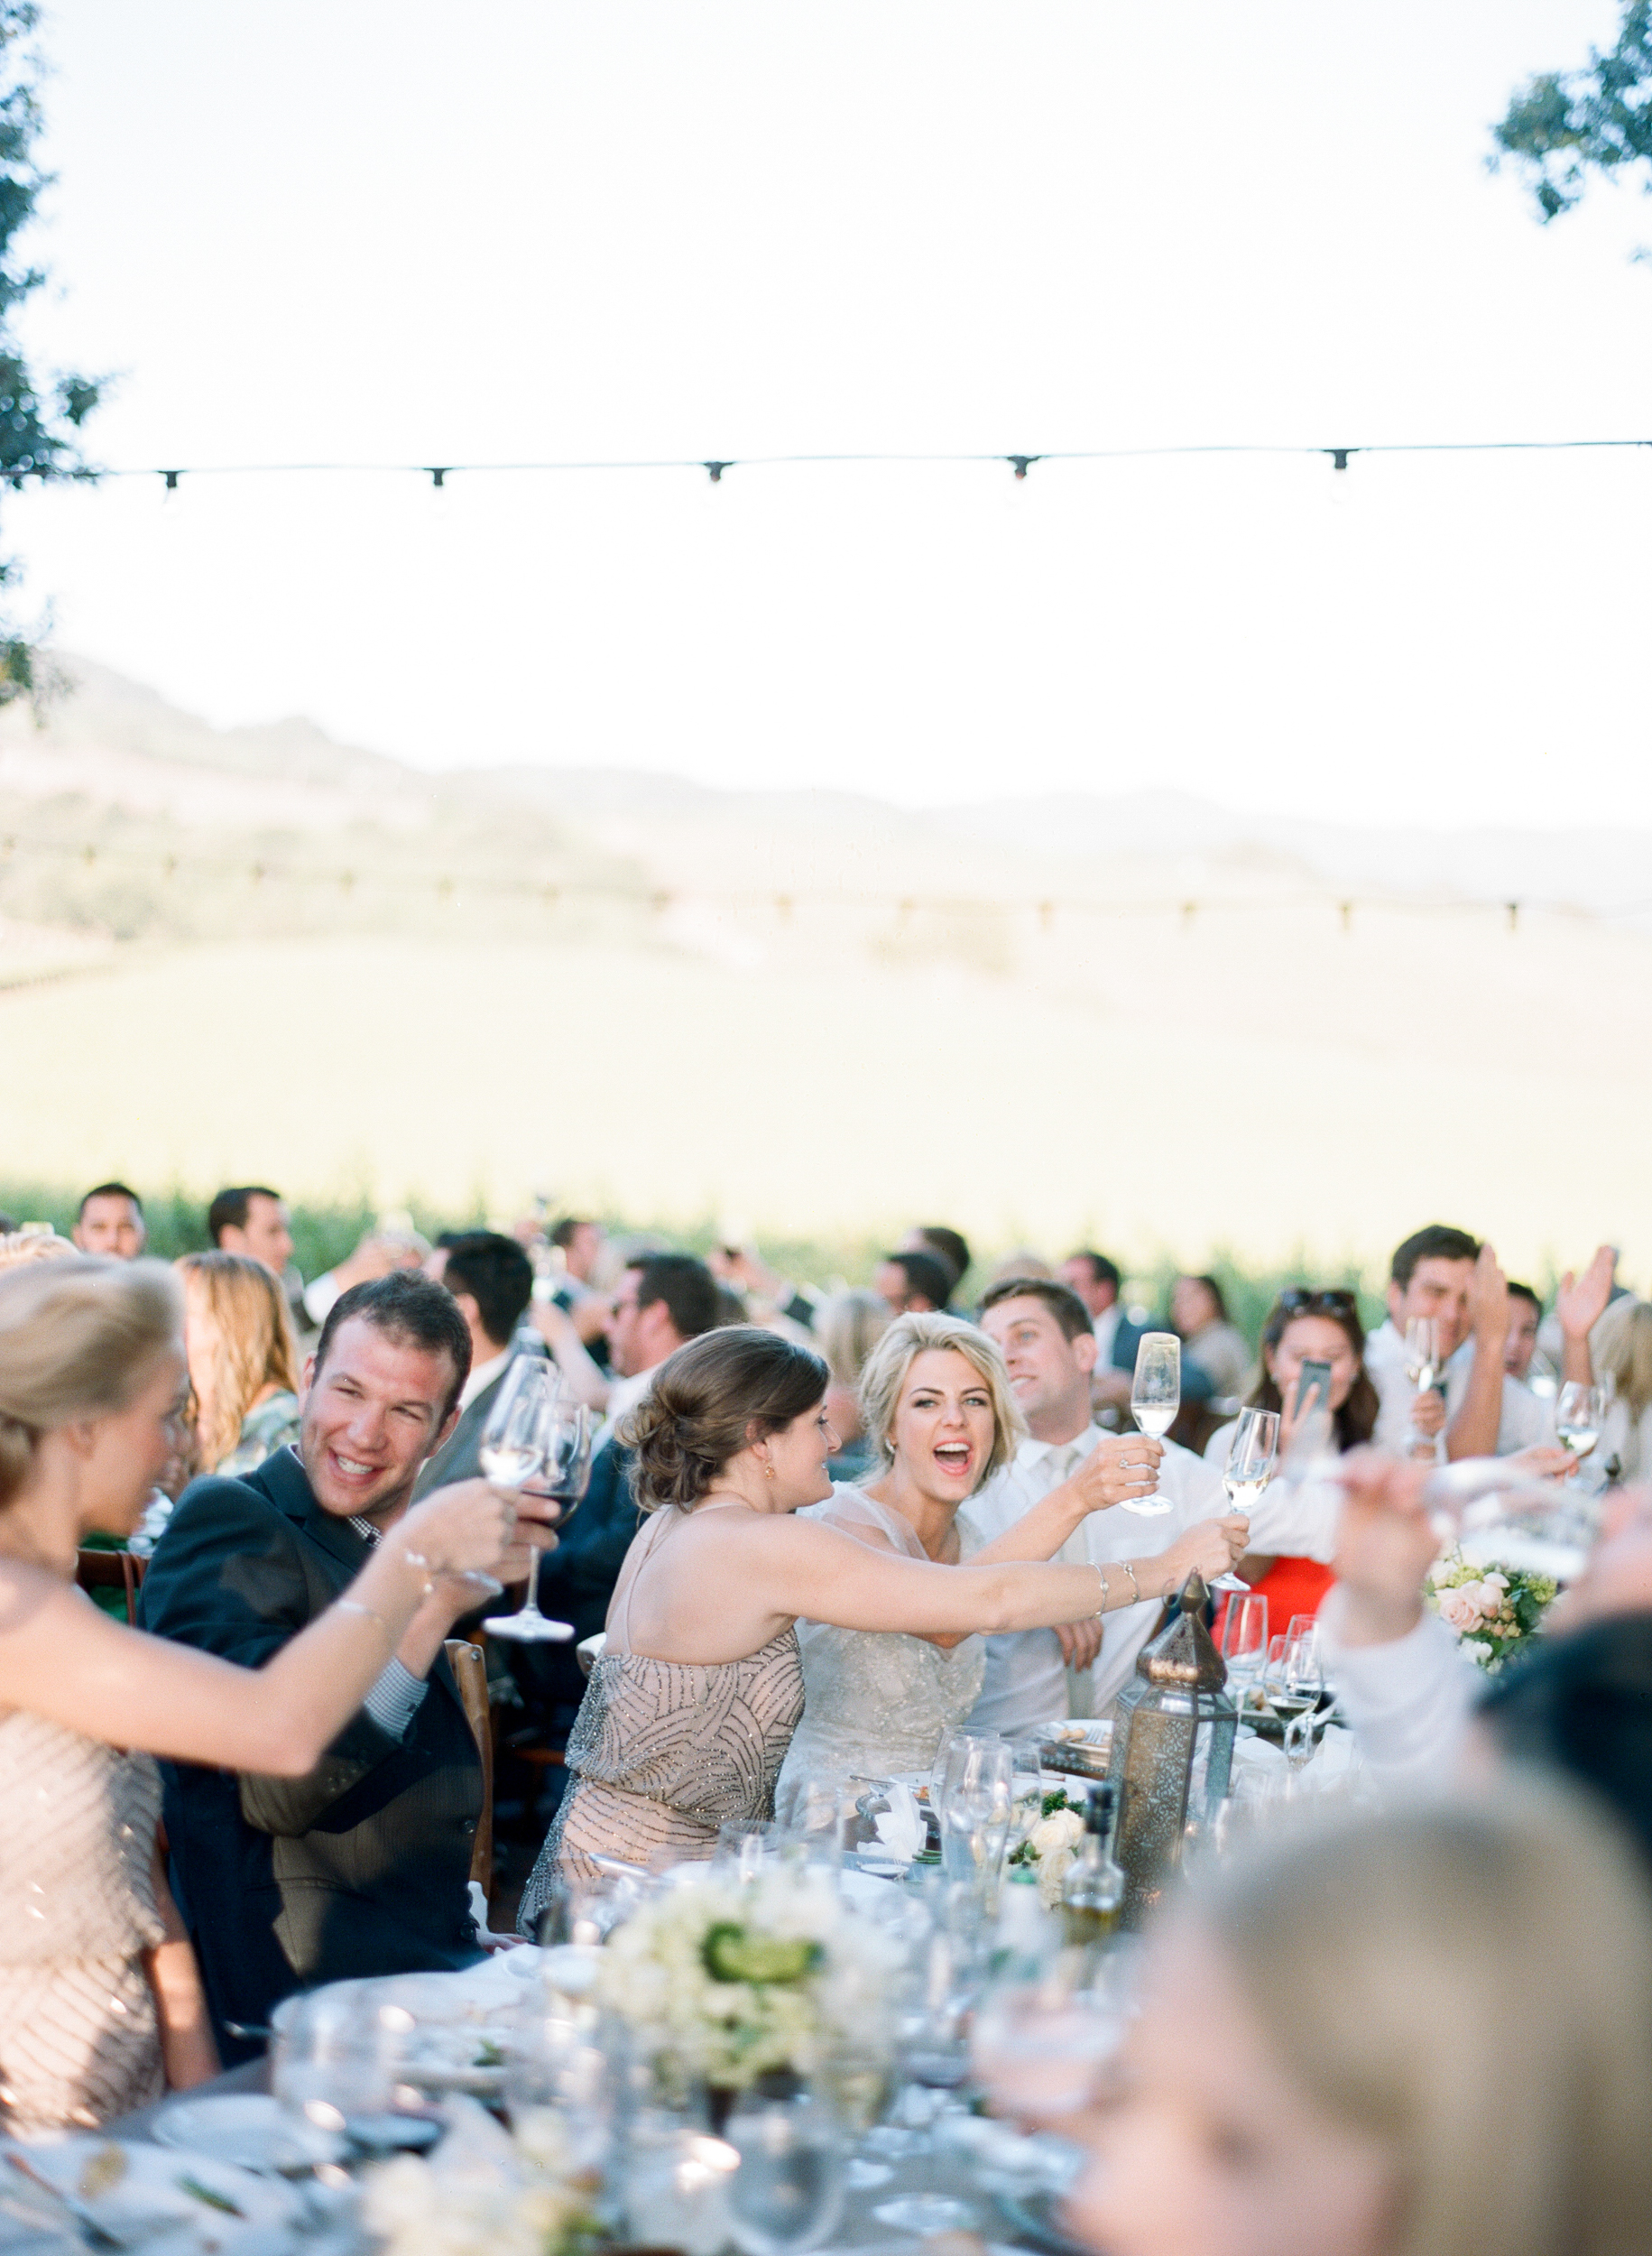 The wedding reception is a joyous affair filled with laughter and clinking champagne flutes; photo by Sylvie Gil